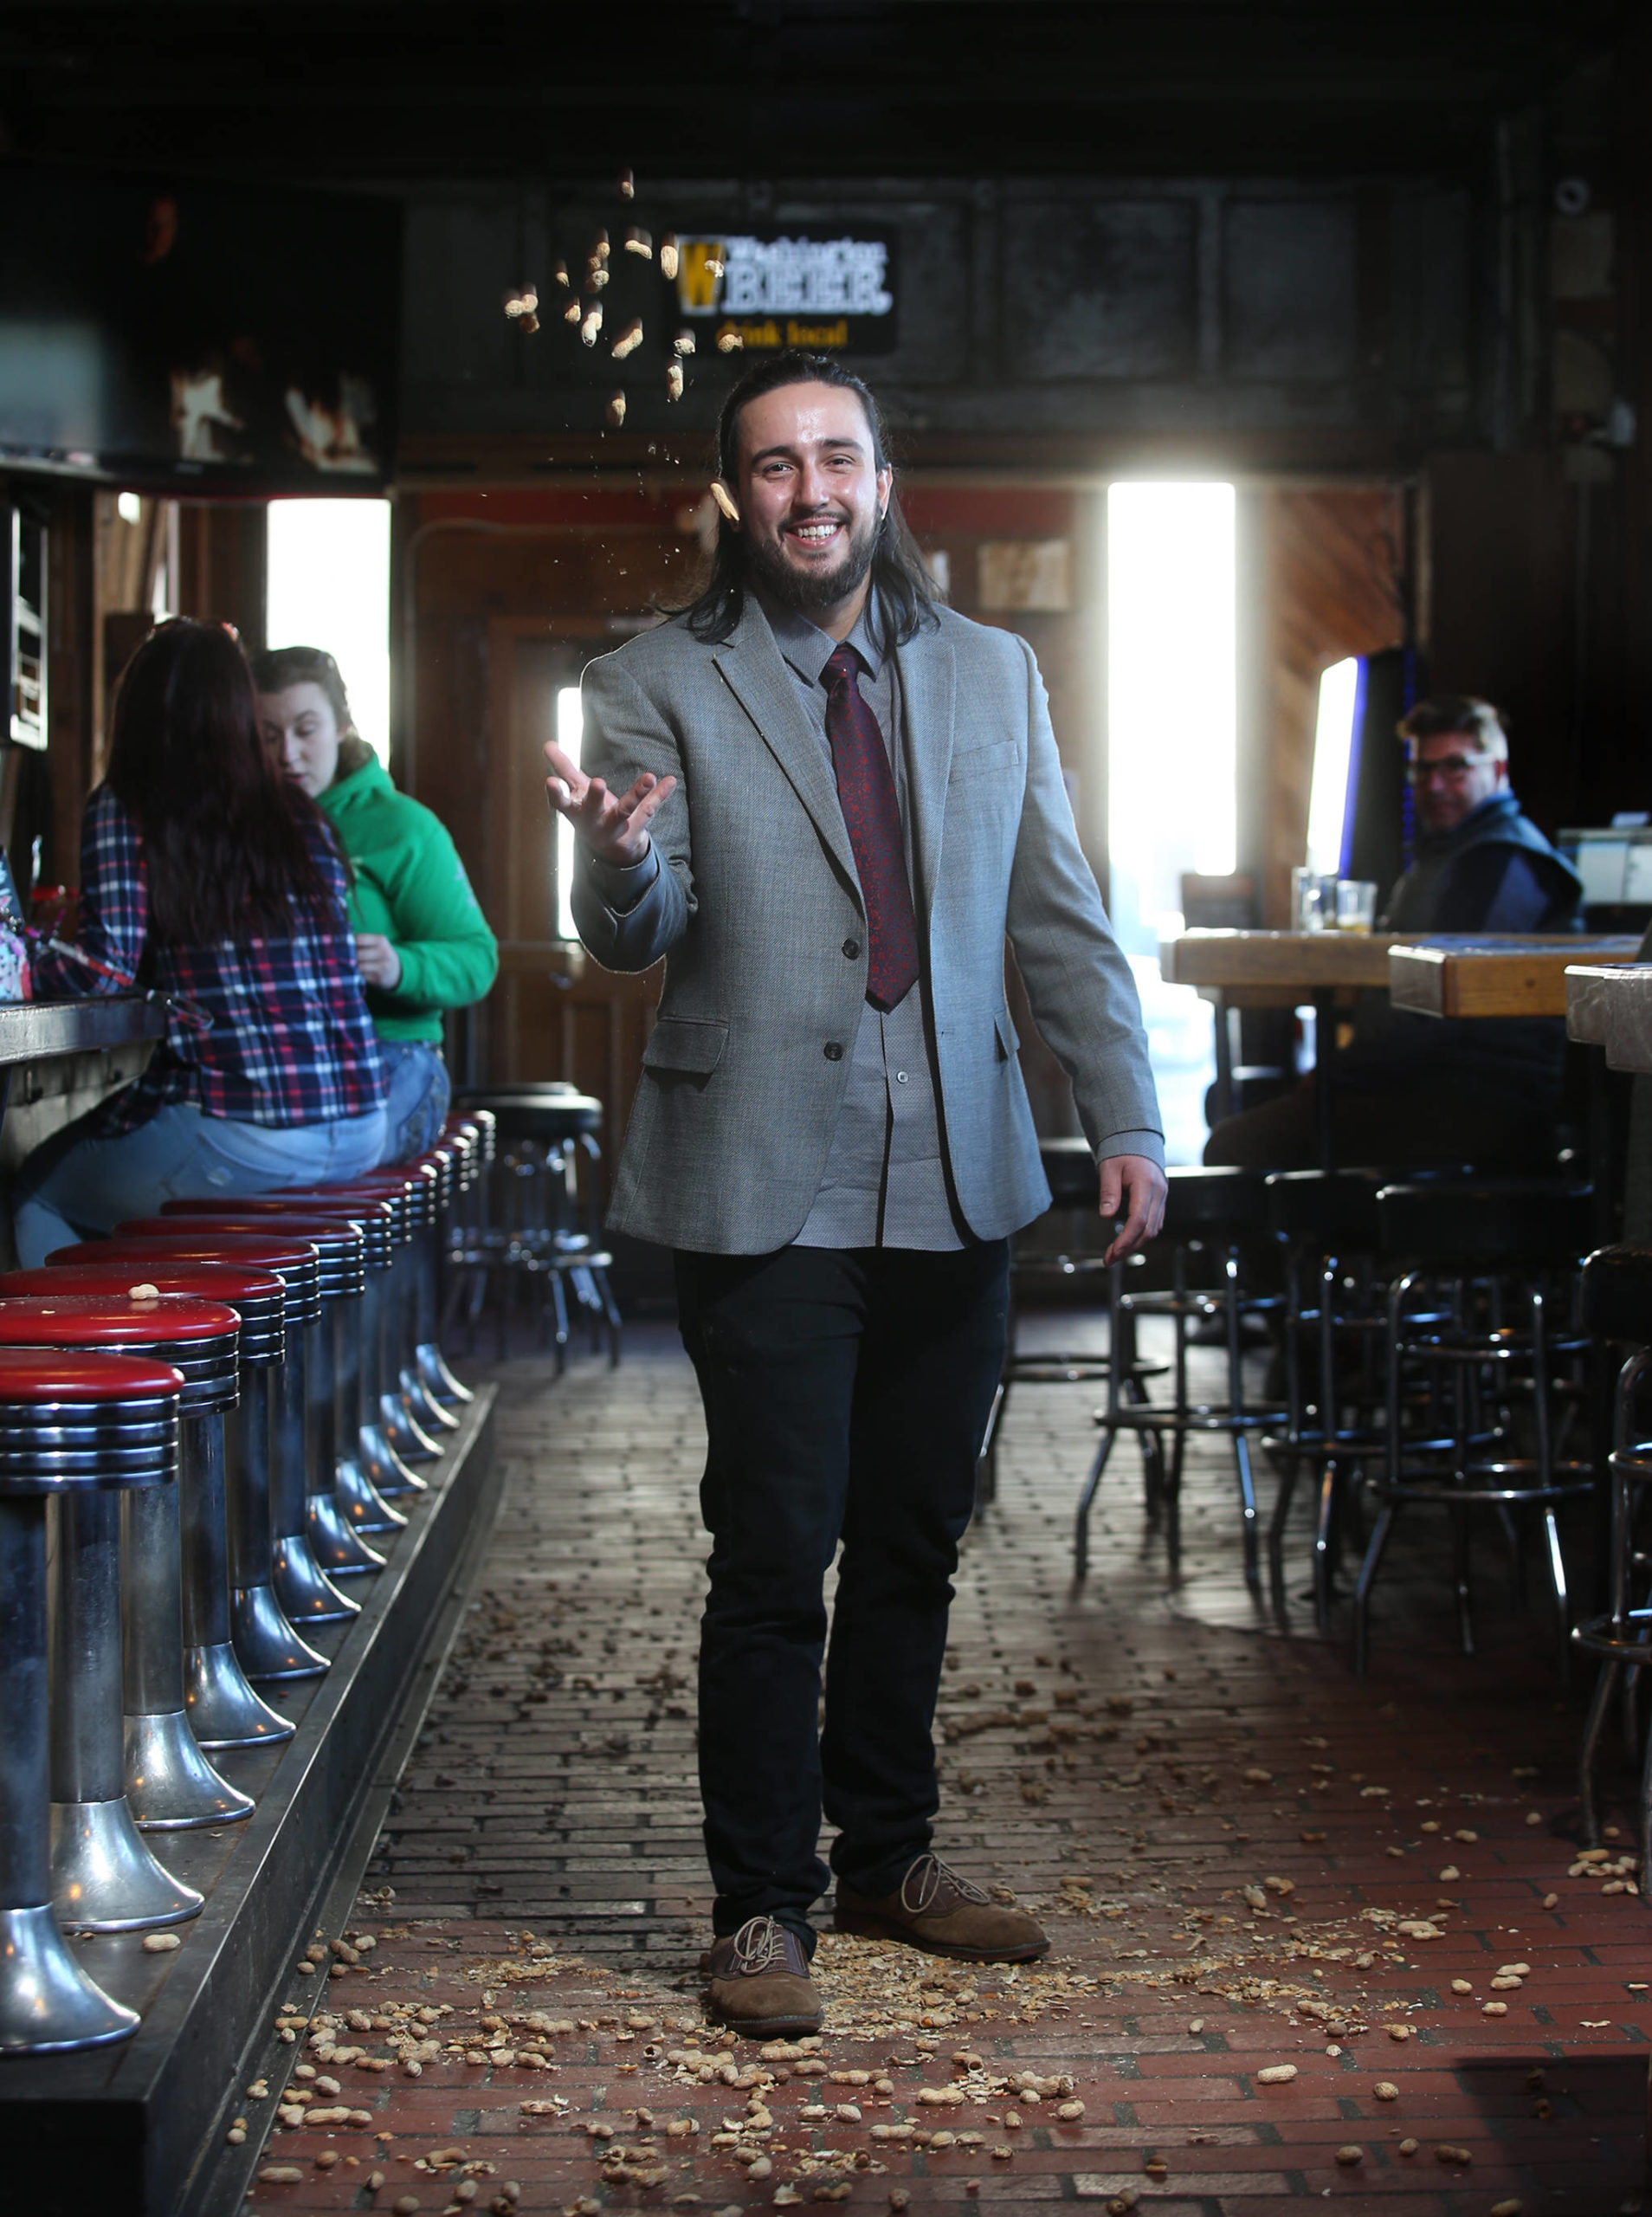 Diamond Knot's Alex Frye moved up the ranks at the Mukilteo brewery and alehouse to tend bar. (Andy Bronson / The Herald)                                 Alex Frye has bartended at Diamond Knot Brewery & Alehouse in Mukilteo for the past six years. (Andy Bronson / The Herald)